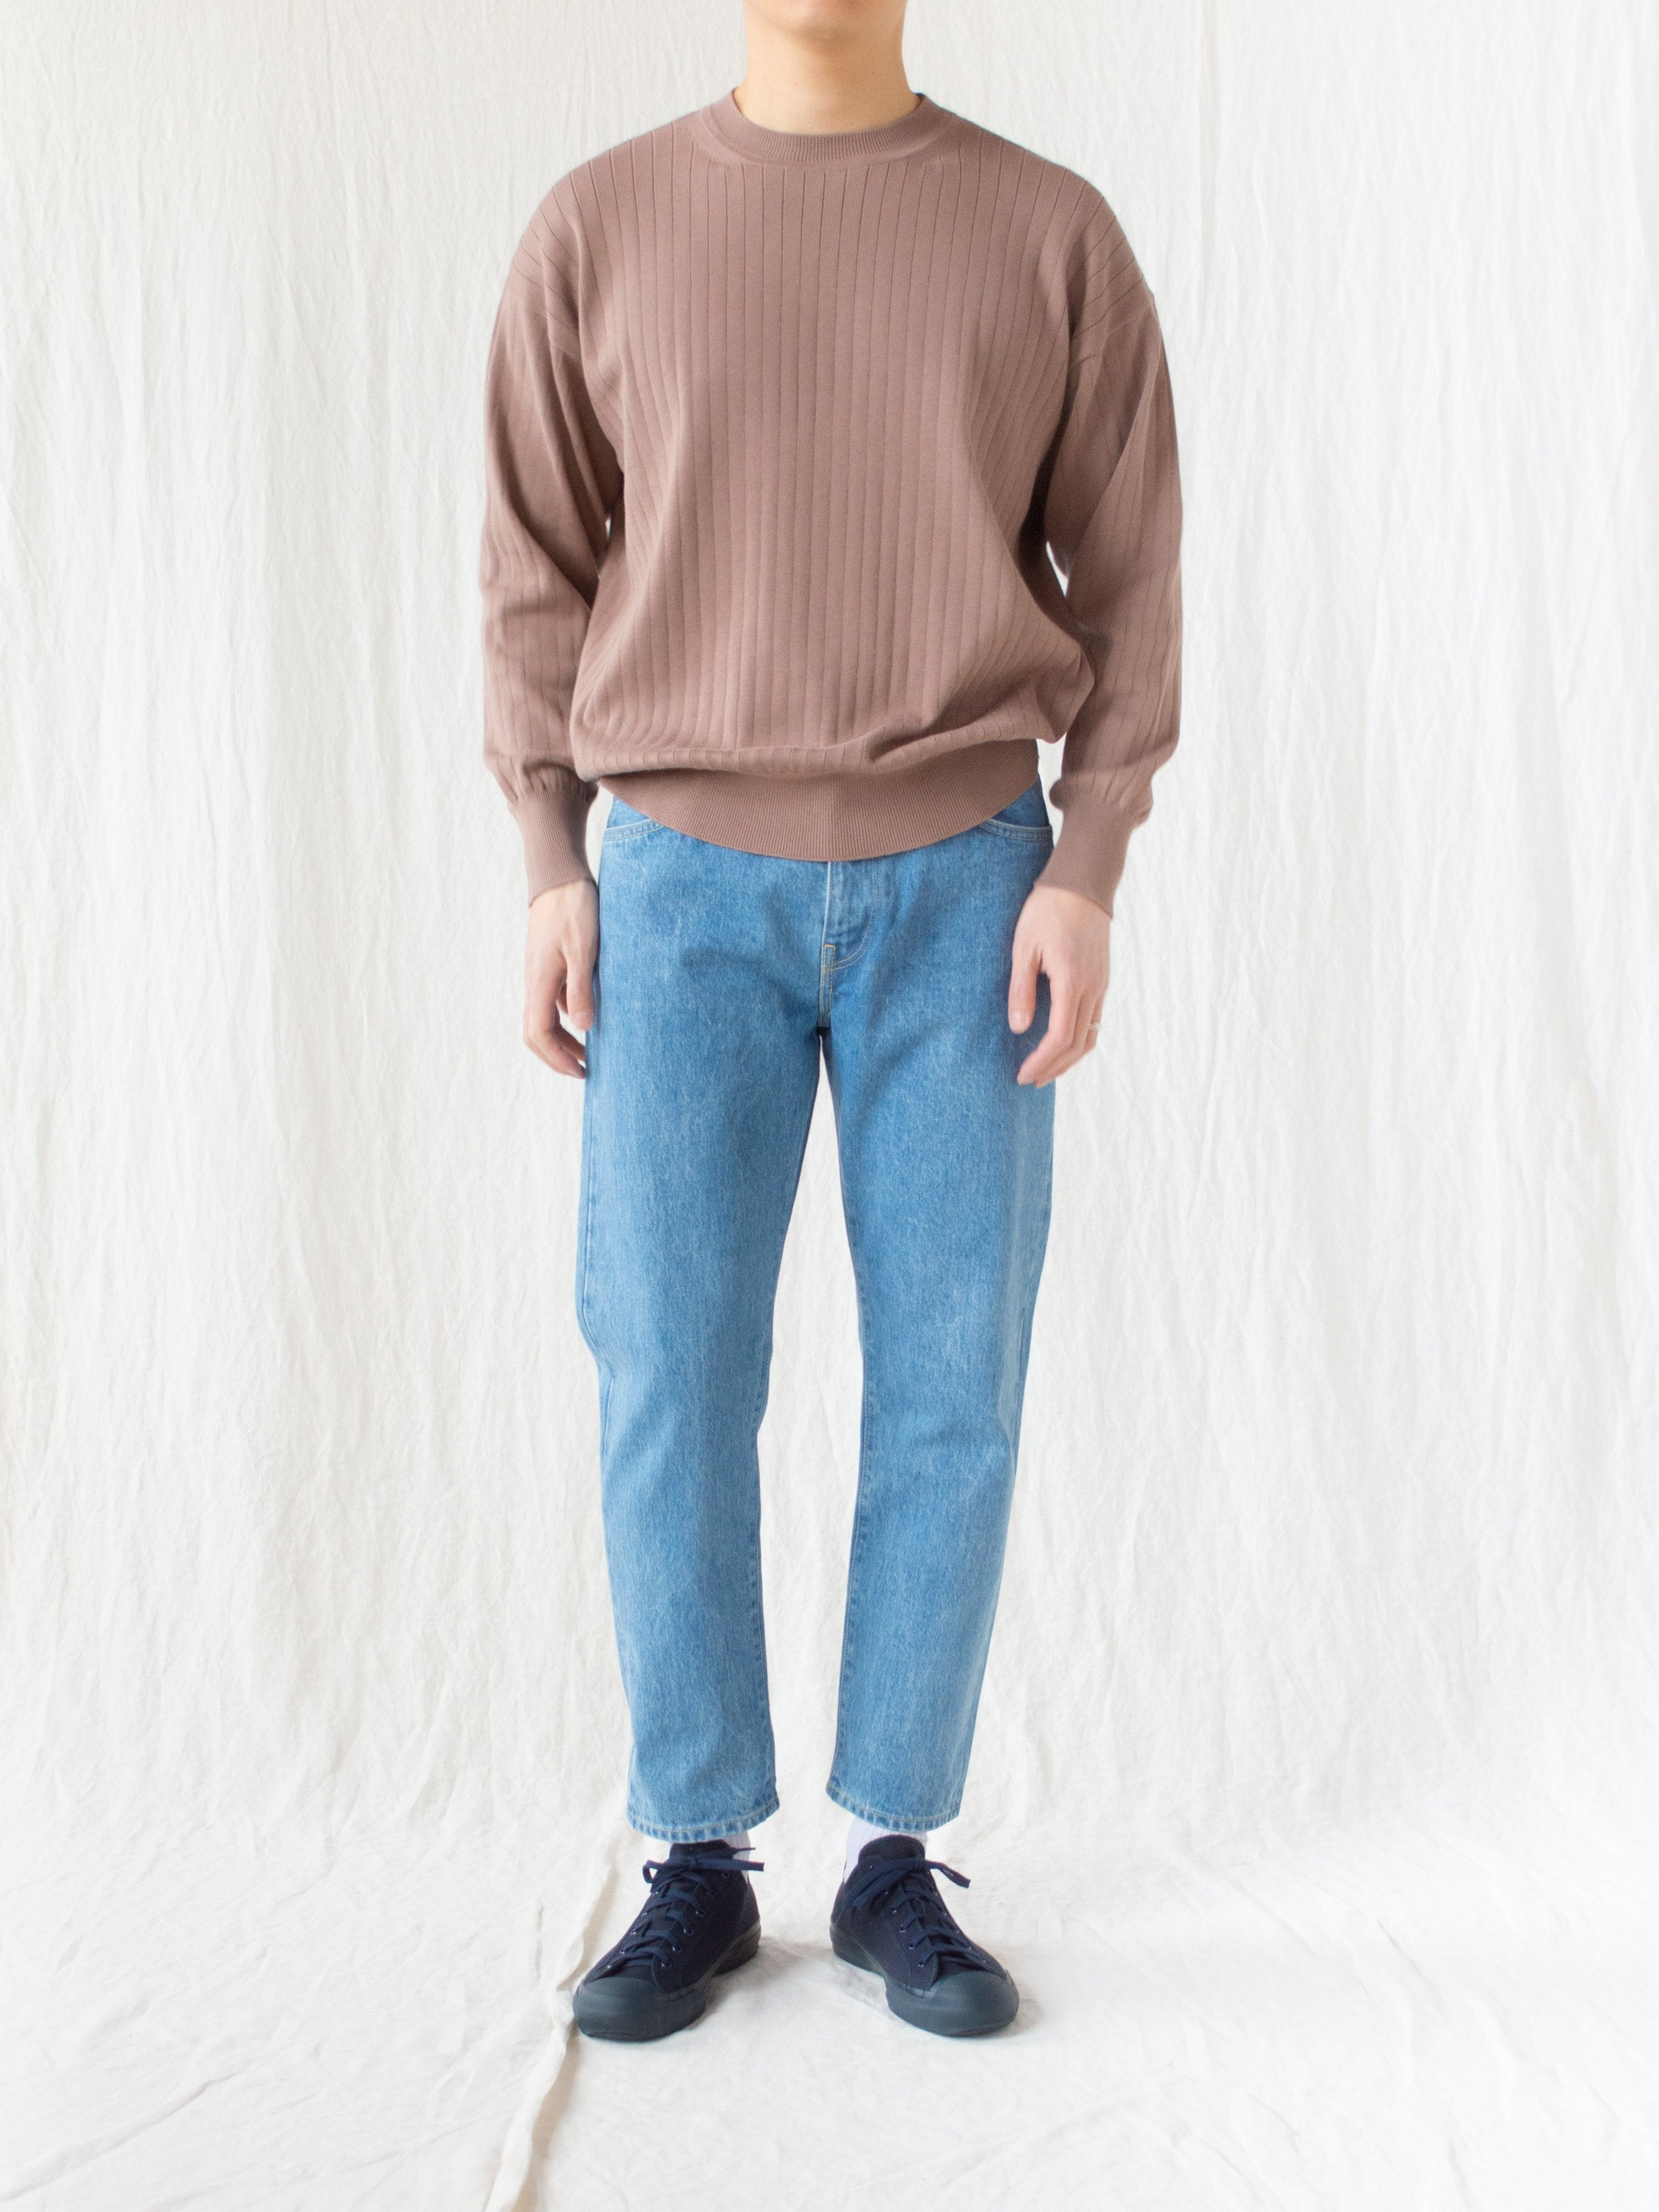 Namu Shop - Hatski Regular Tapered Denim - Ice Blue